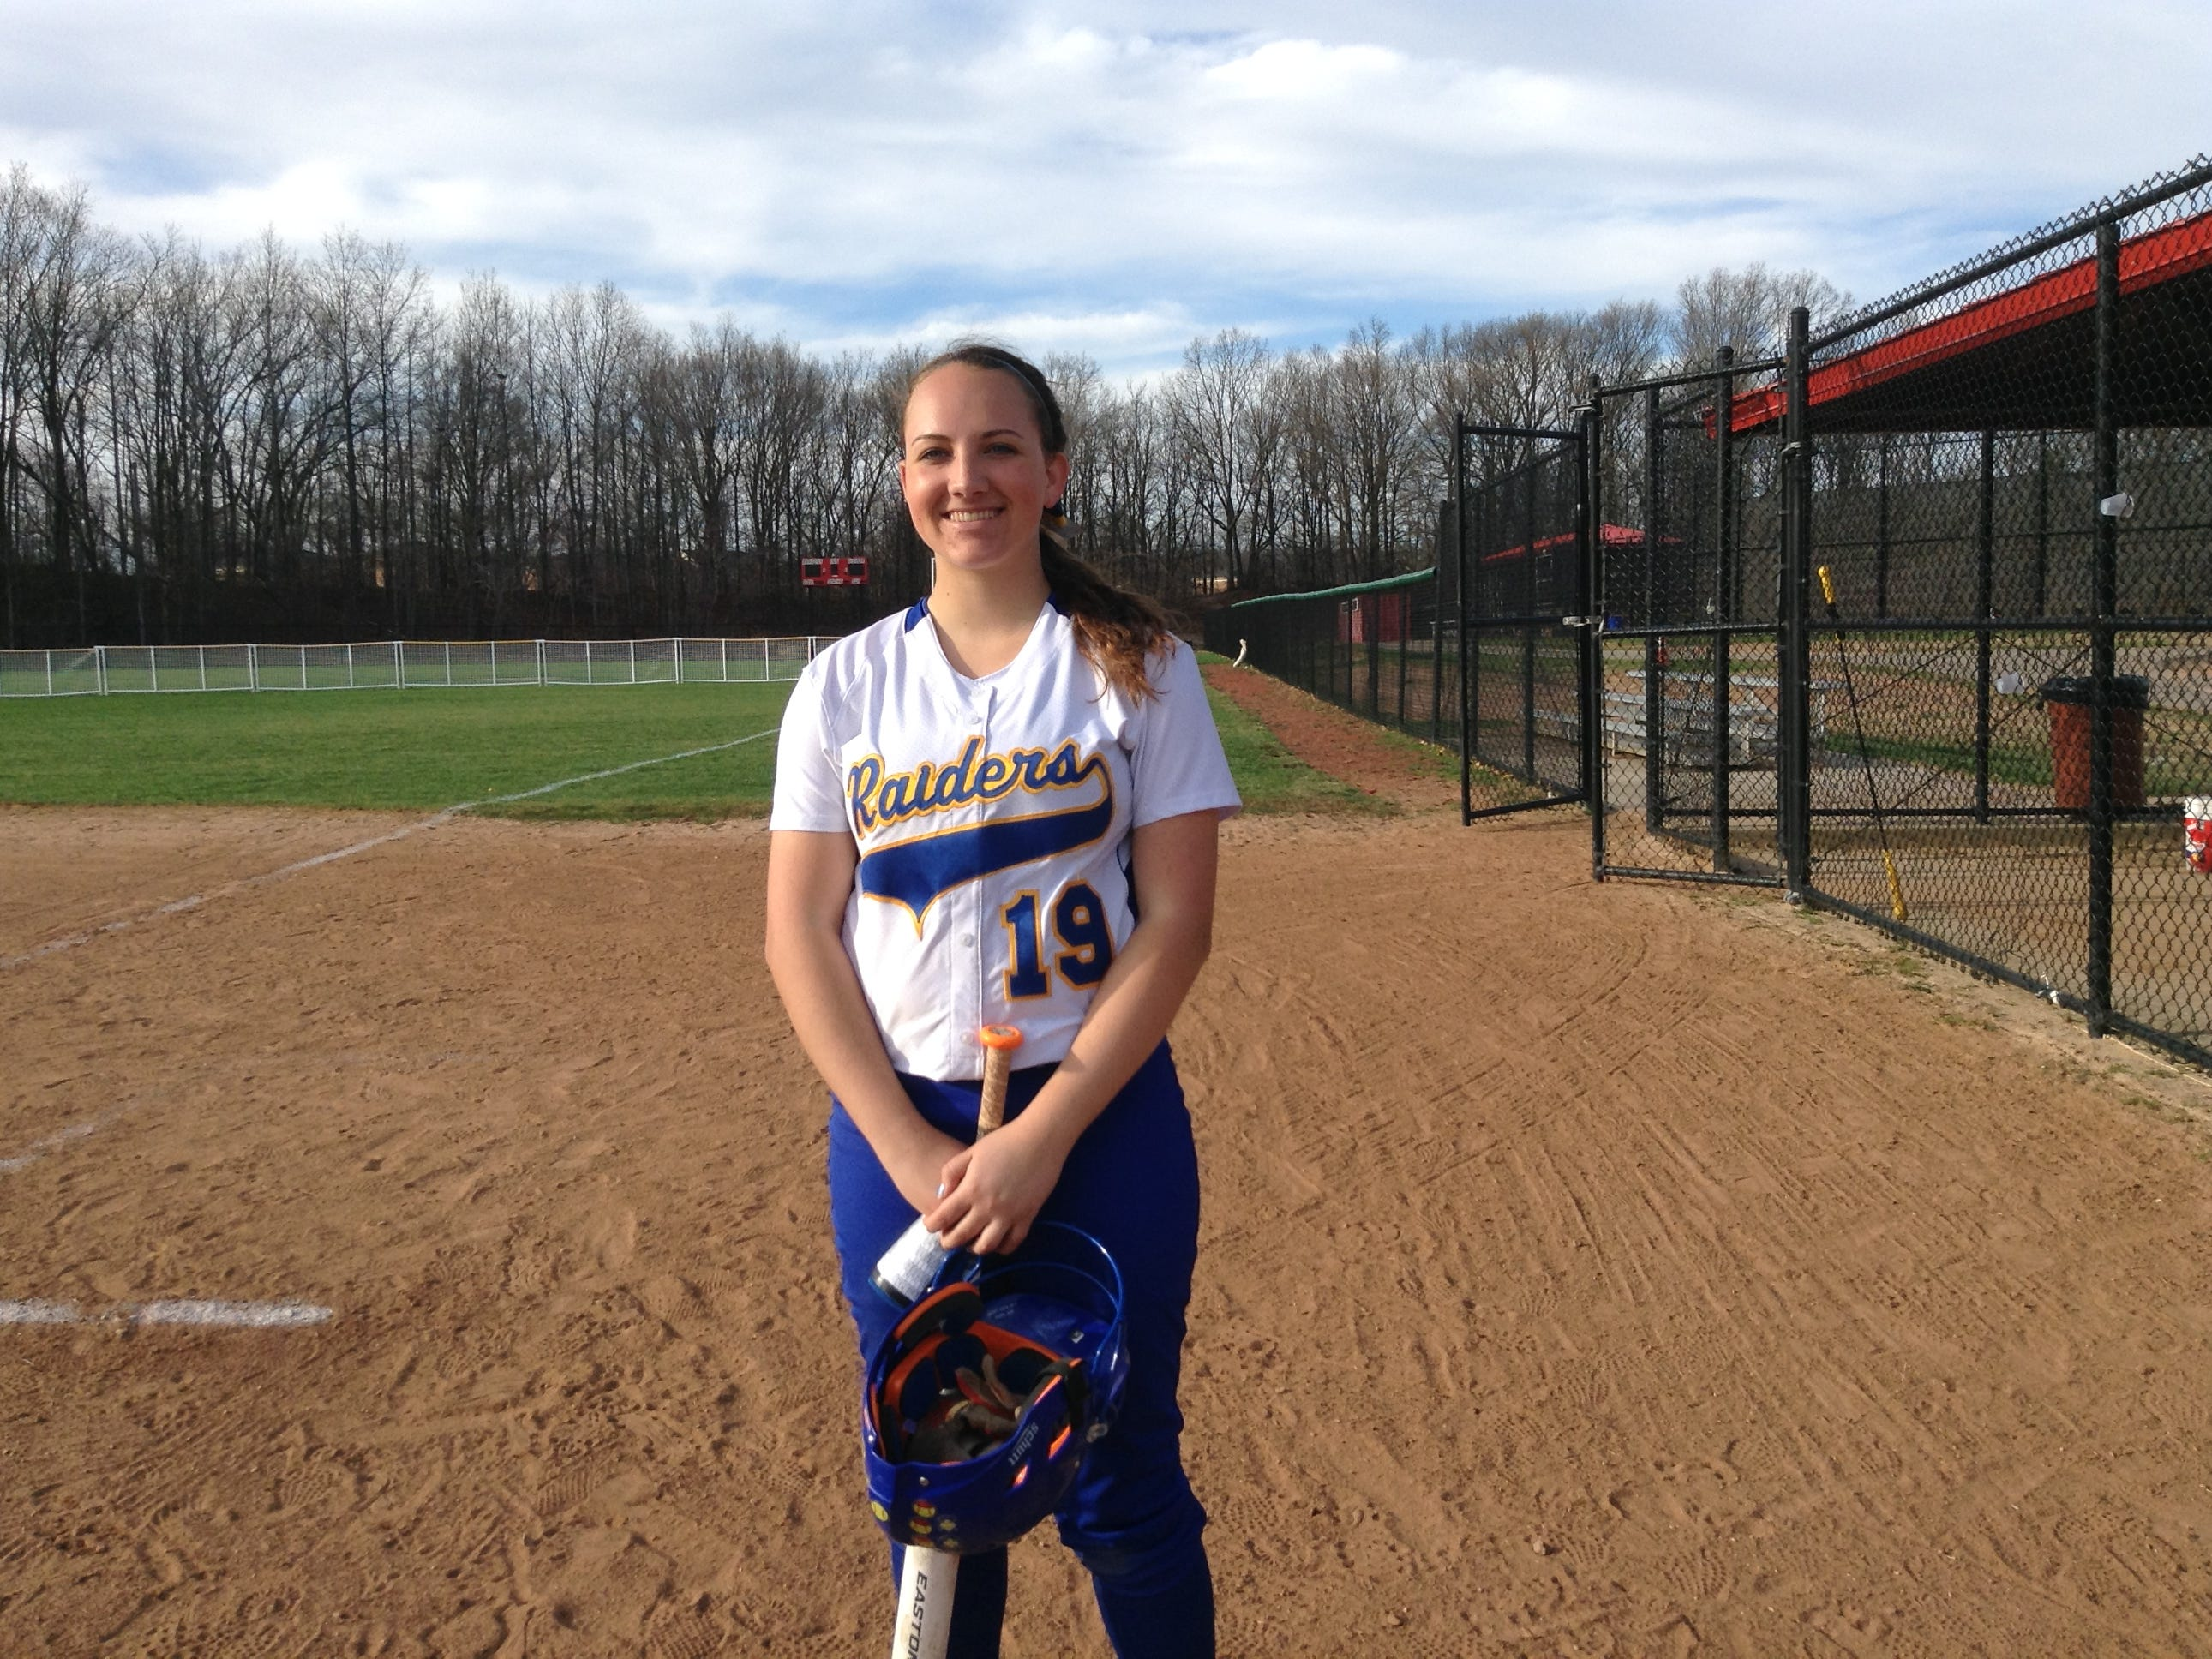 North Brunswick senior third baseman Rebecca Colandrea is this week's Home News Tribune Player of the Week